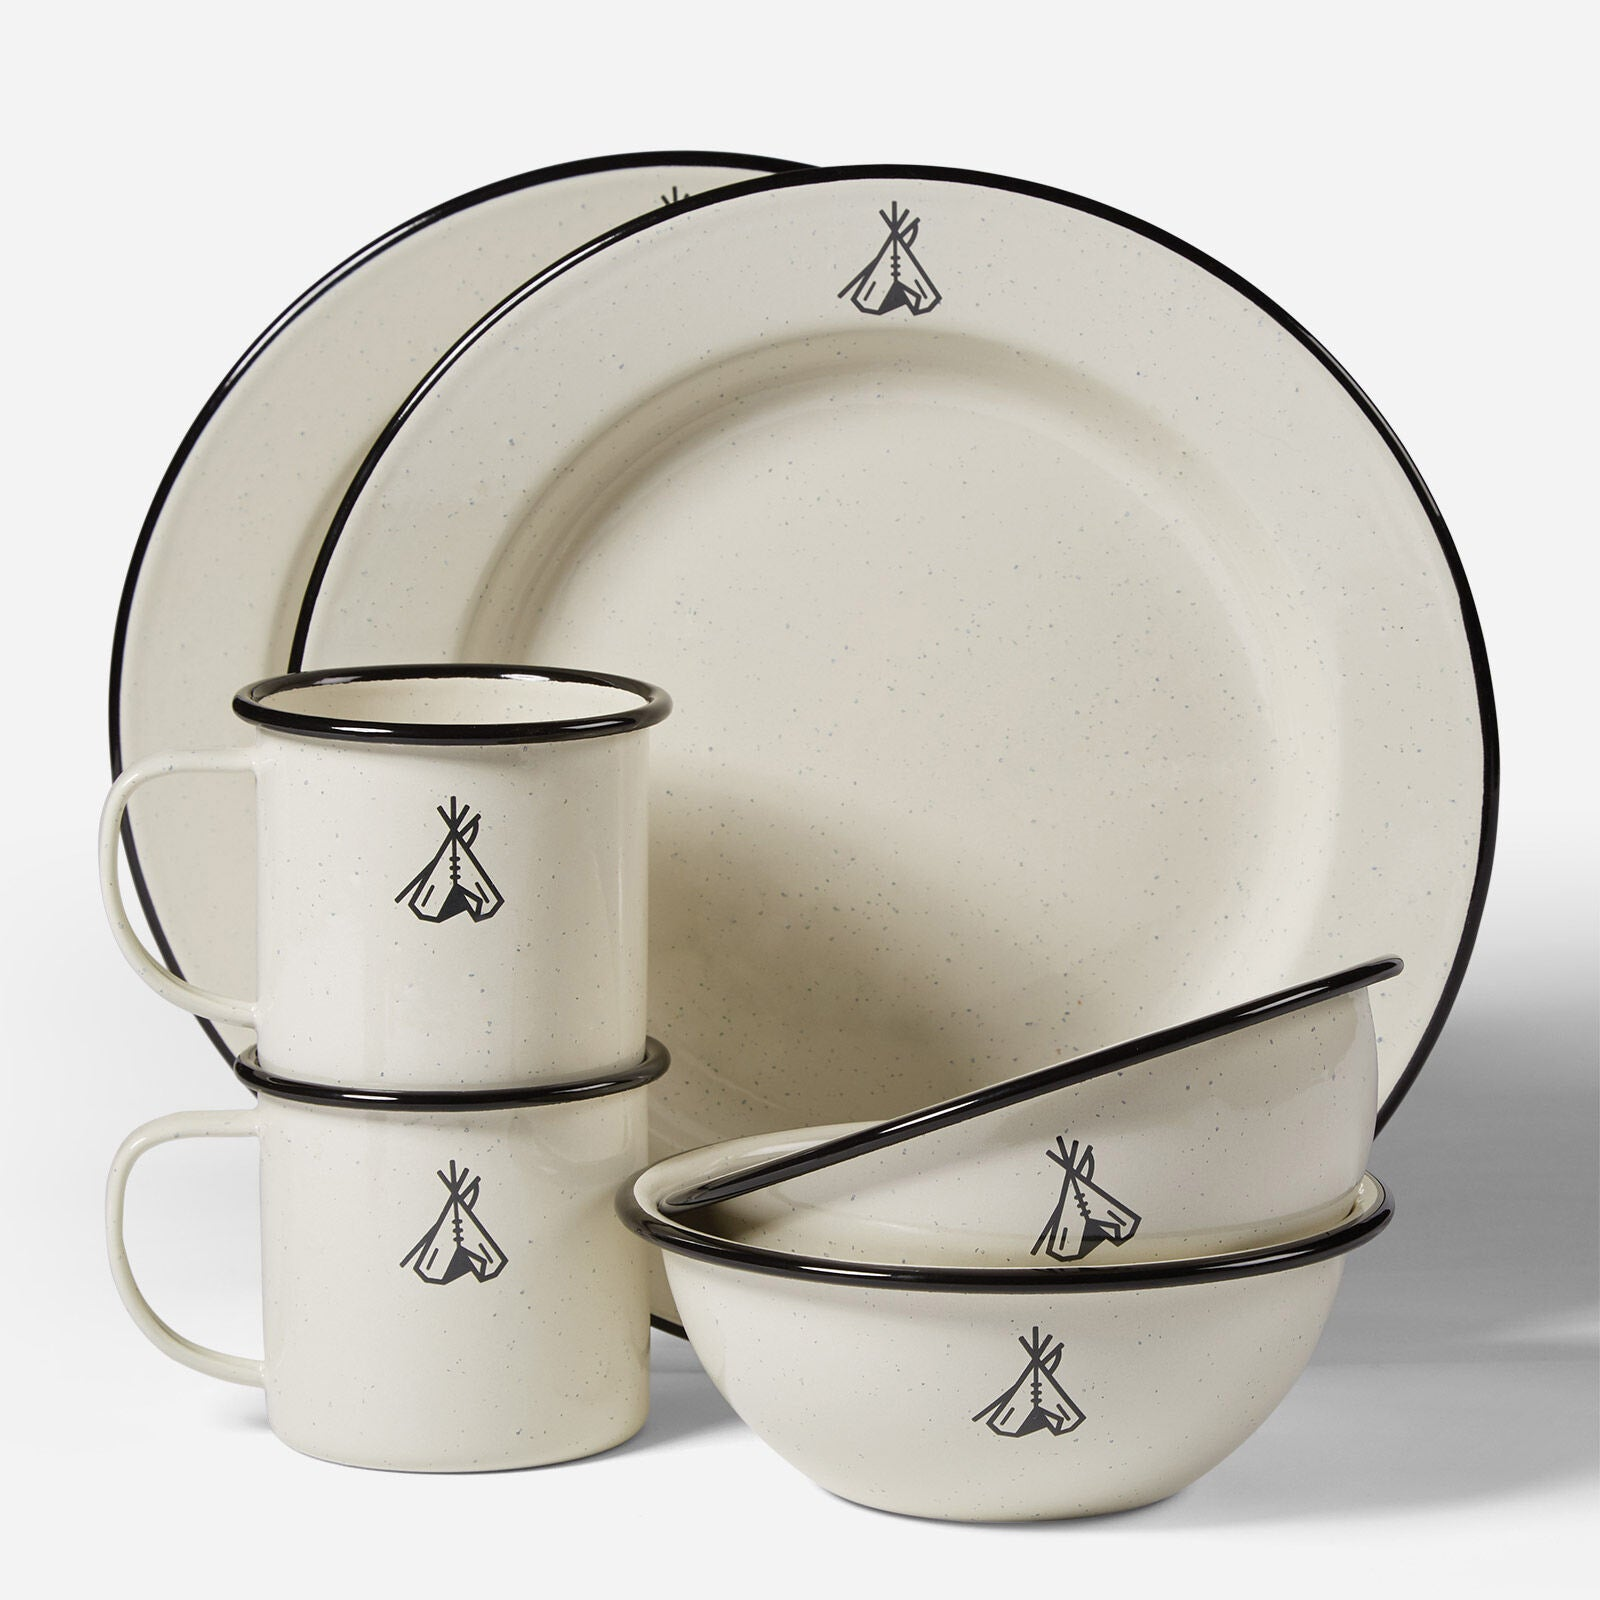 Enamelware Set of 2 in Camp Ivory